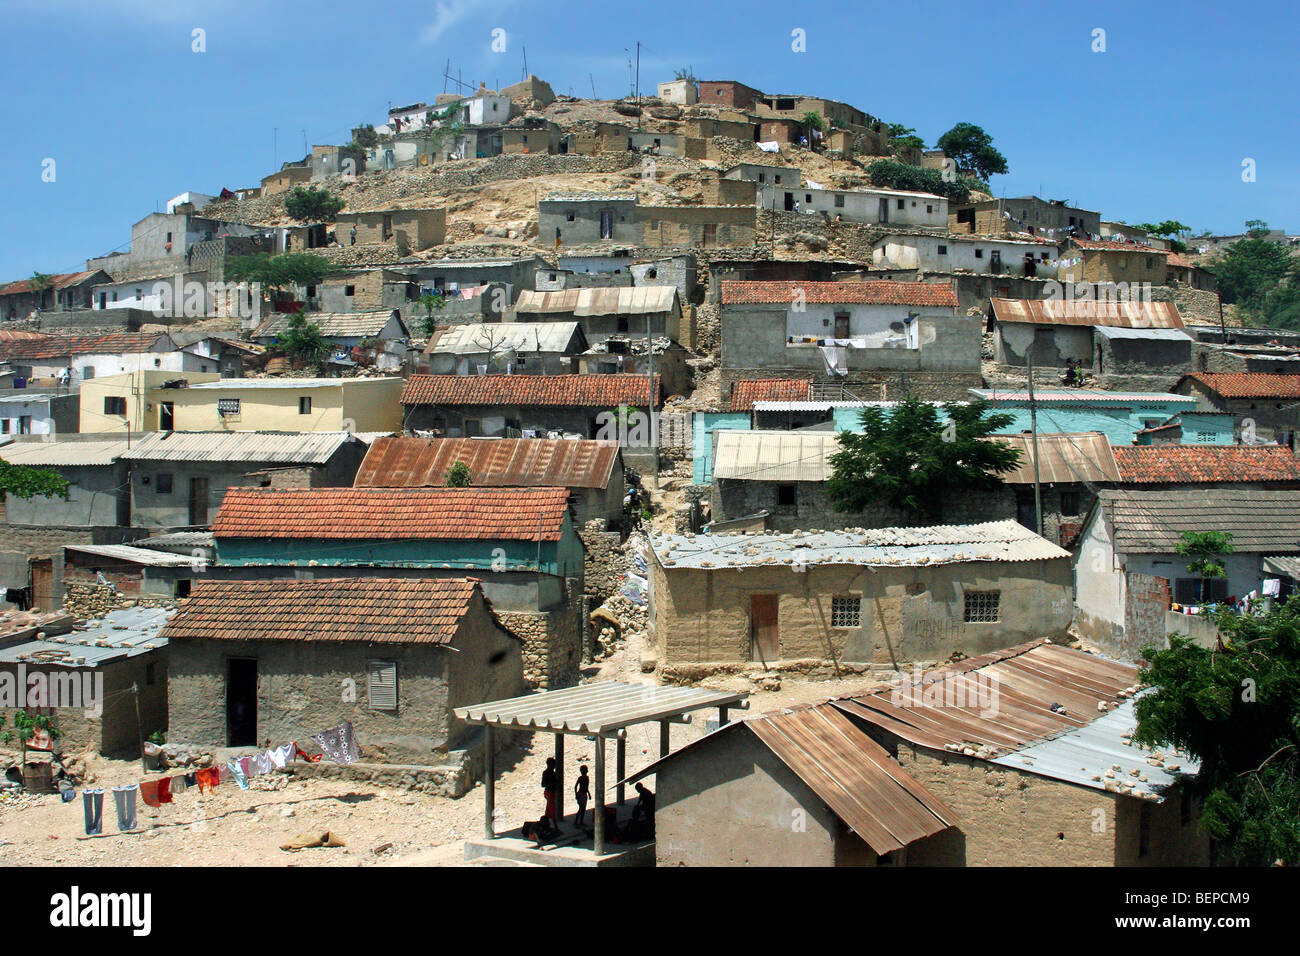 Brick houses on hill of suburb of Lobito, Angola, Southern Africa - Stock Image